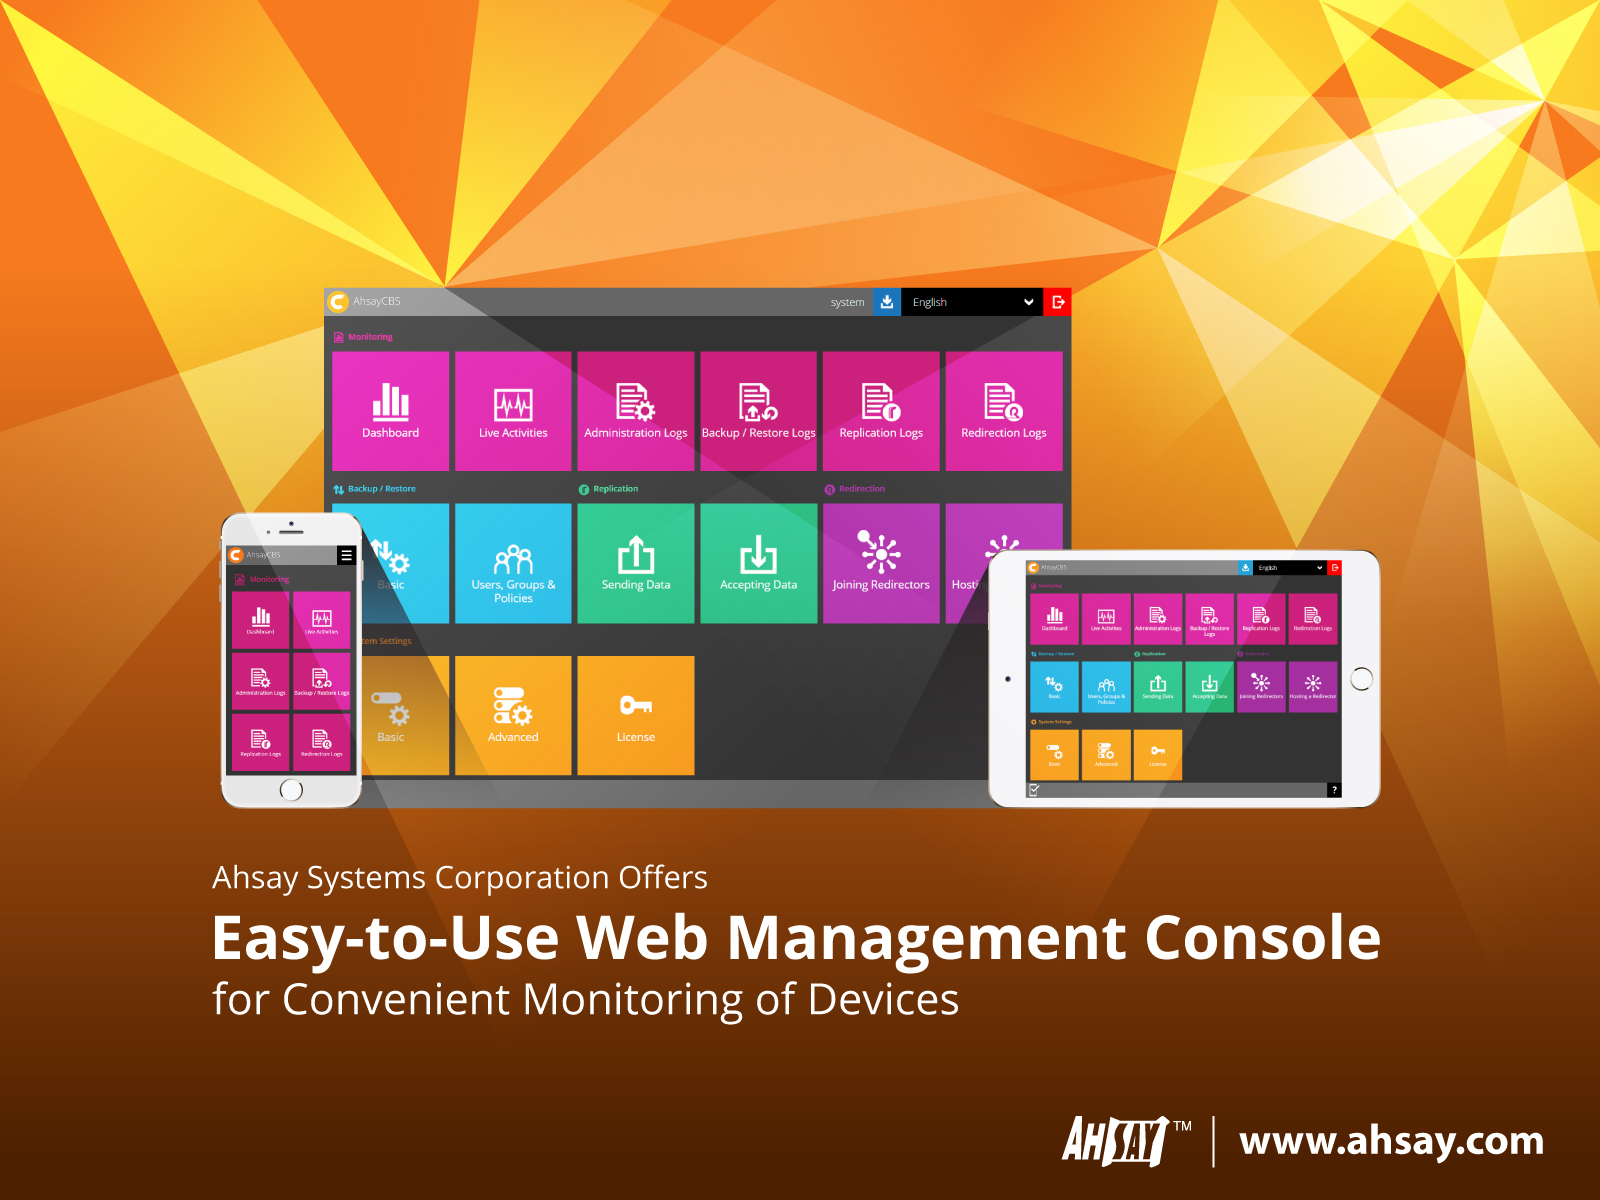 Easy-to-Use-Web-Management-Console-for-Convenient-Monitoring-of-Devices_url